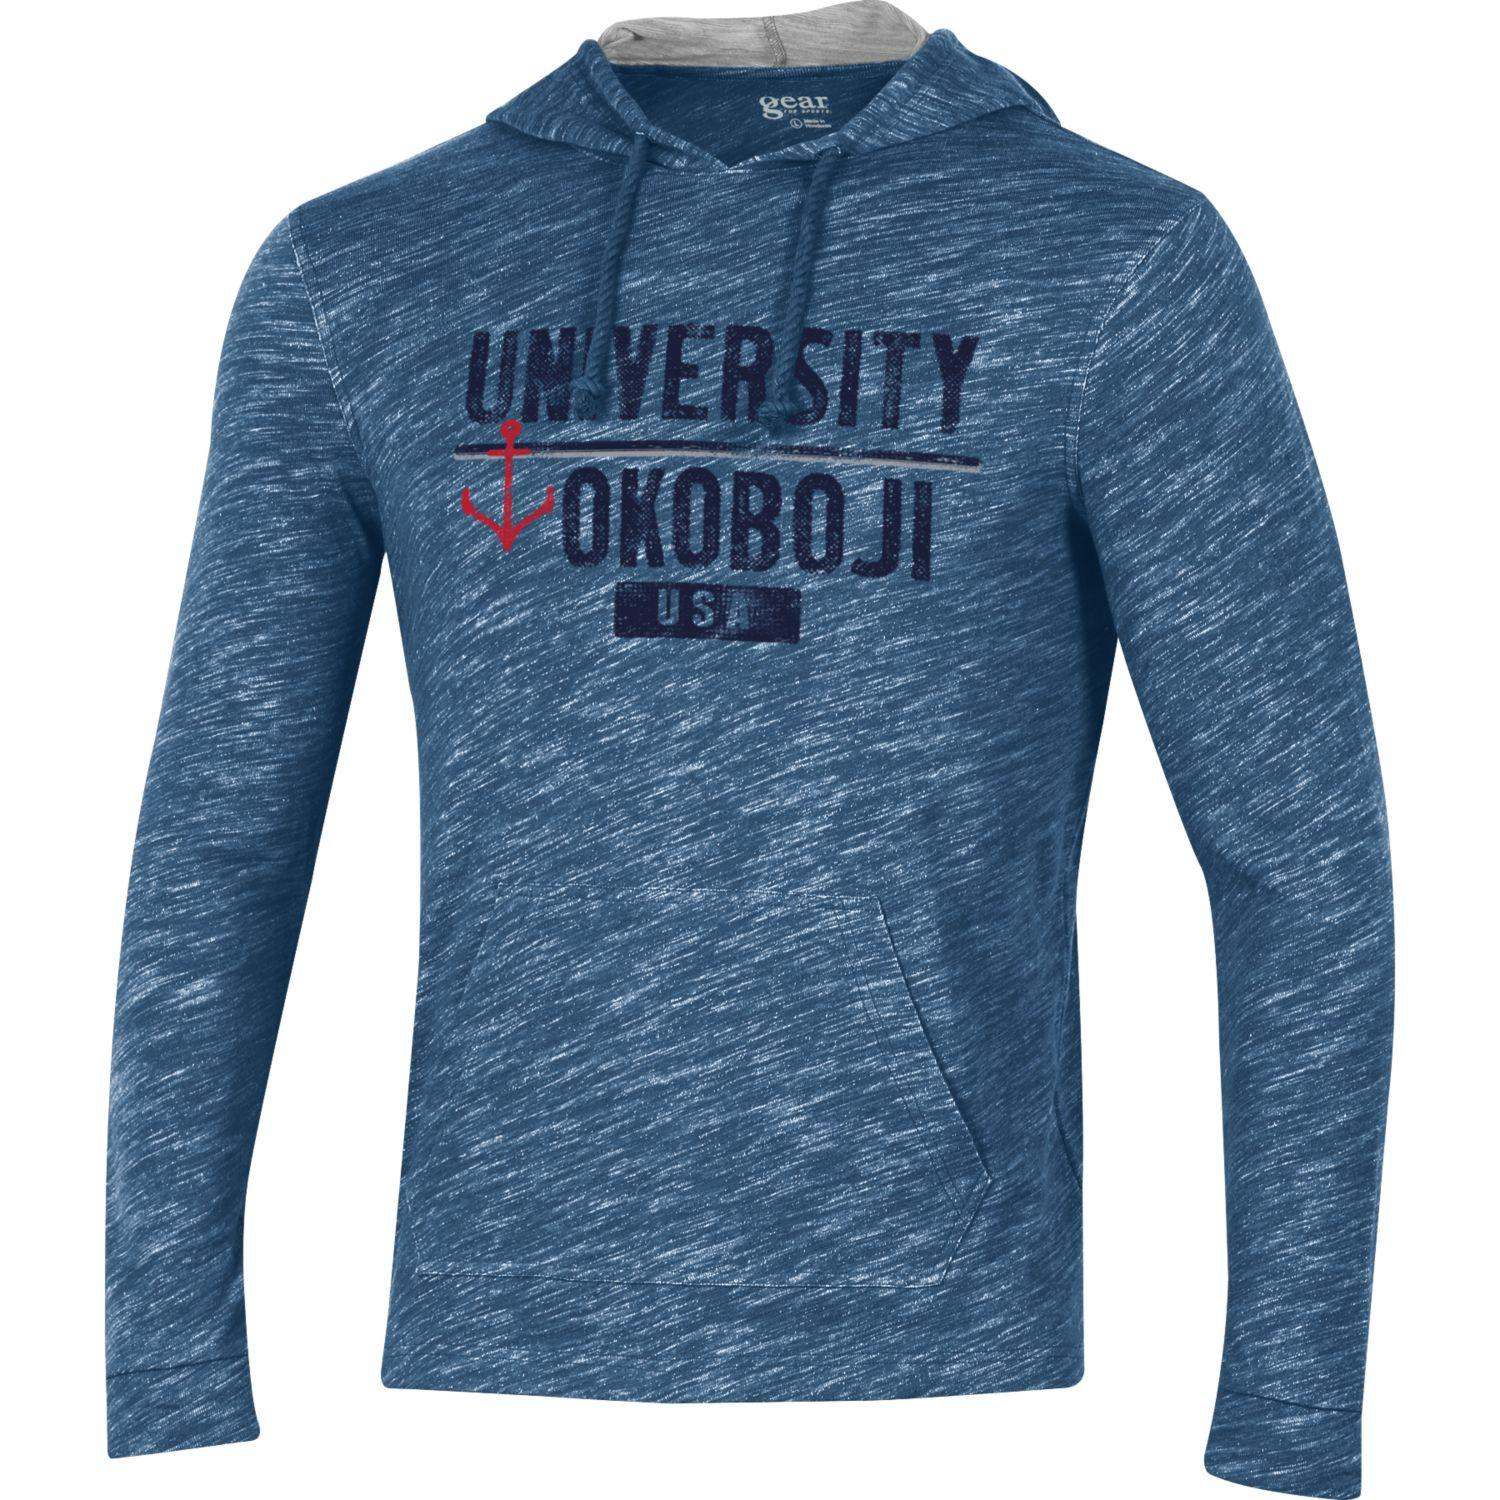 Okoboji USA Huntington Hood - Faded Navy